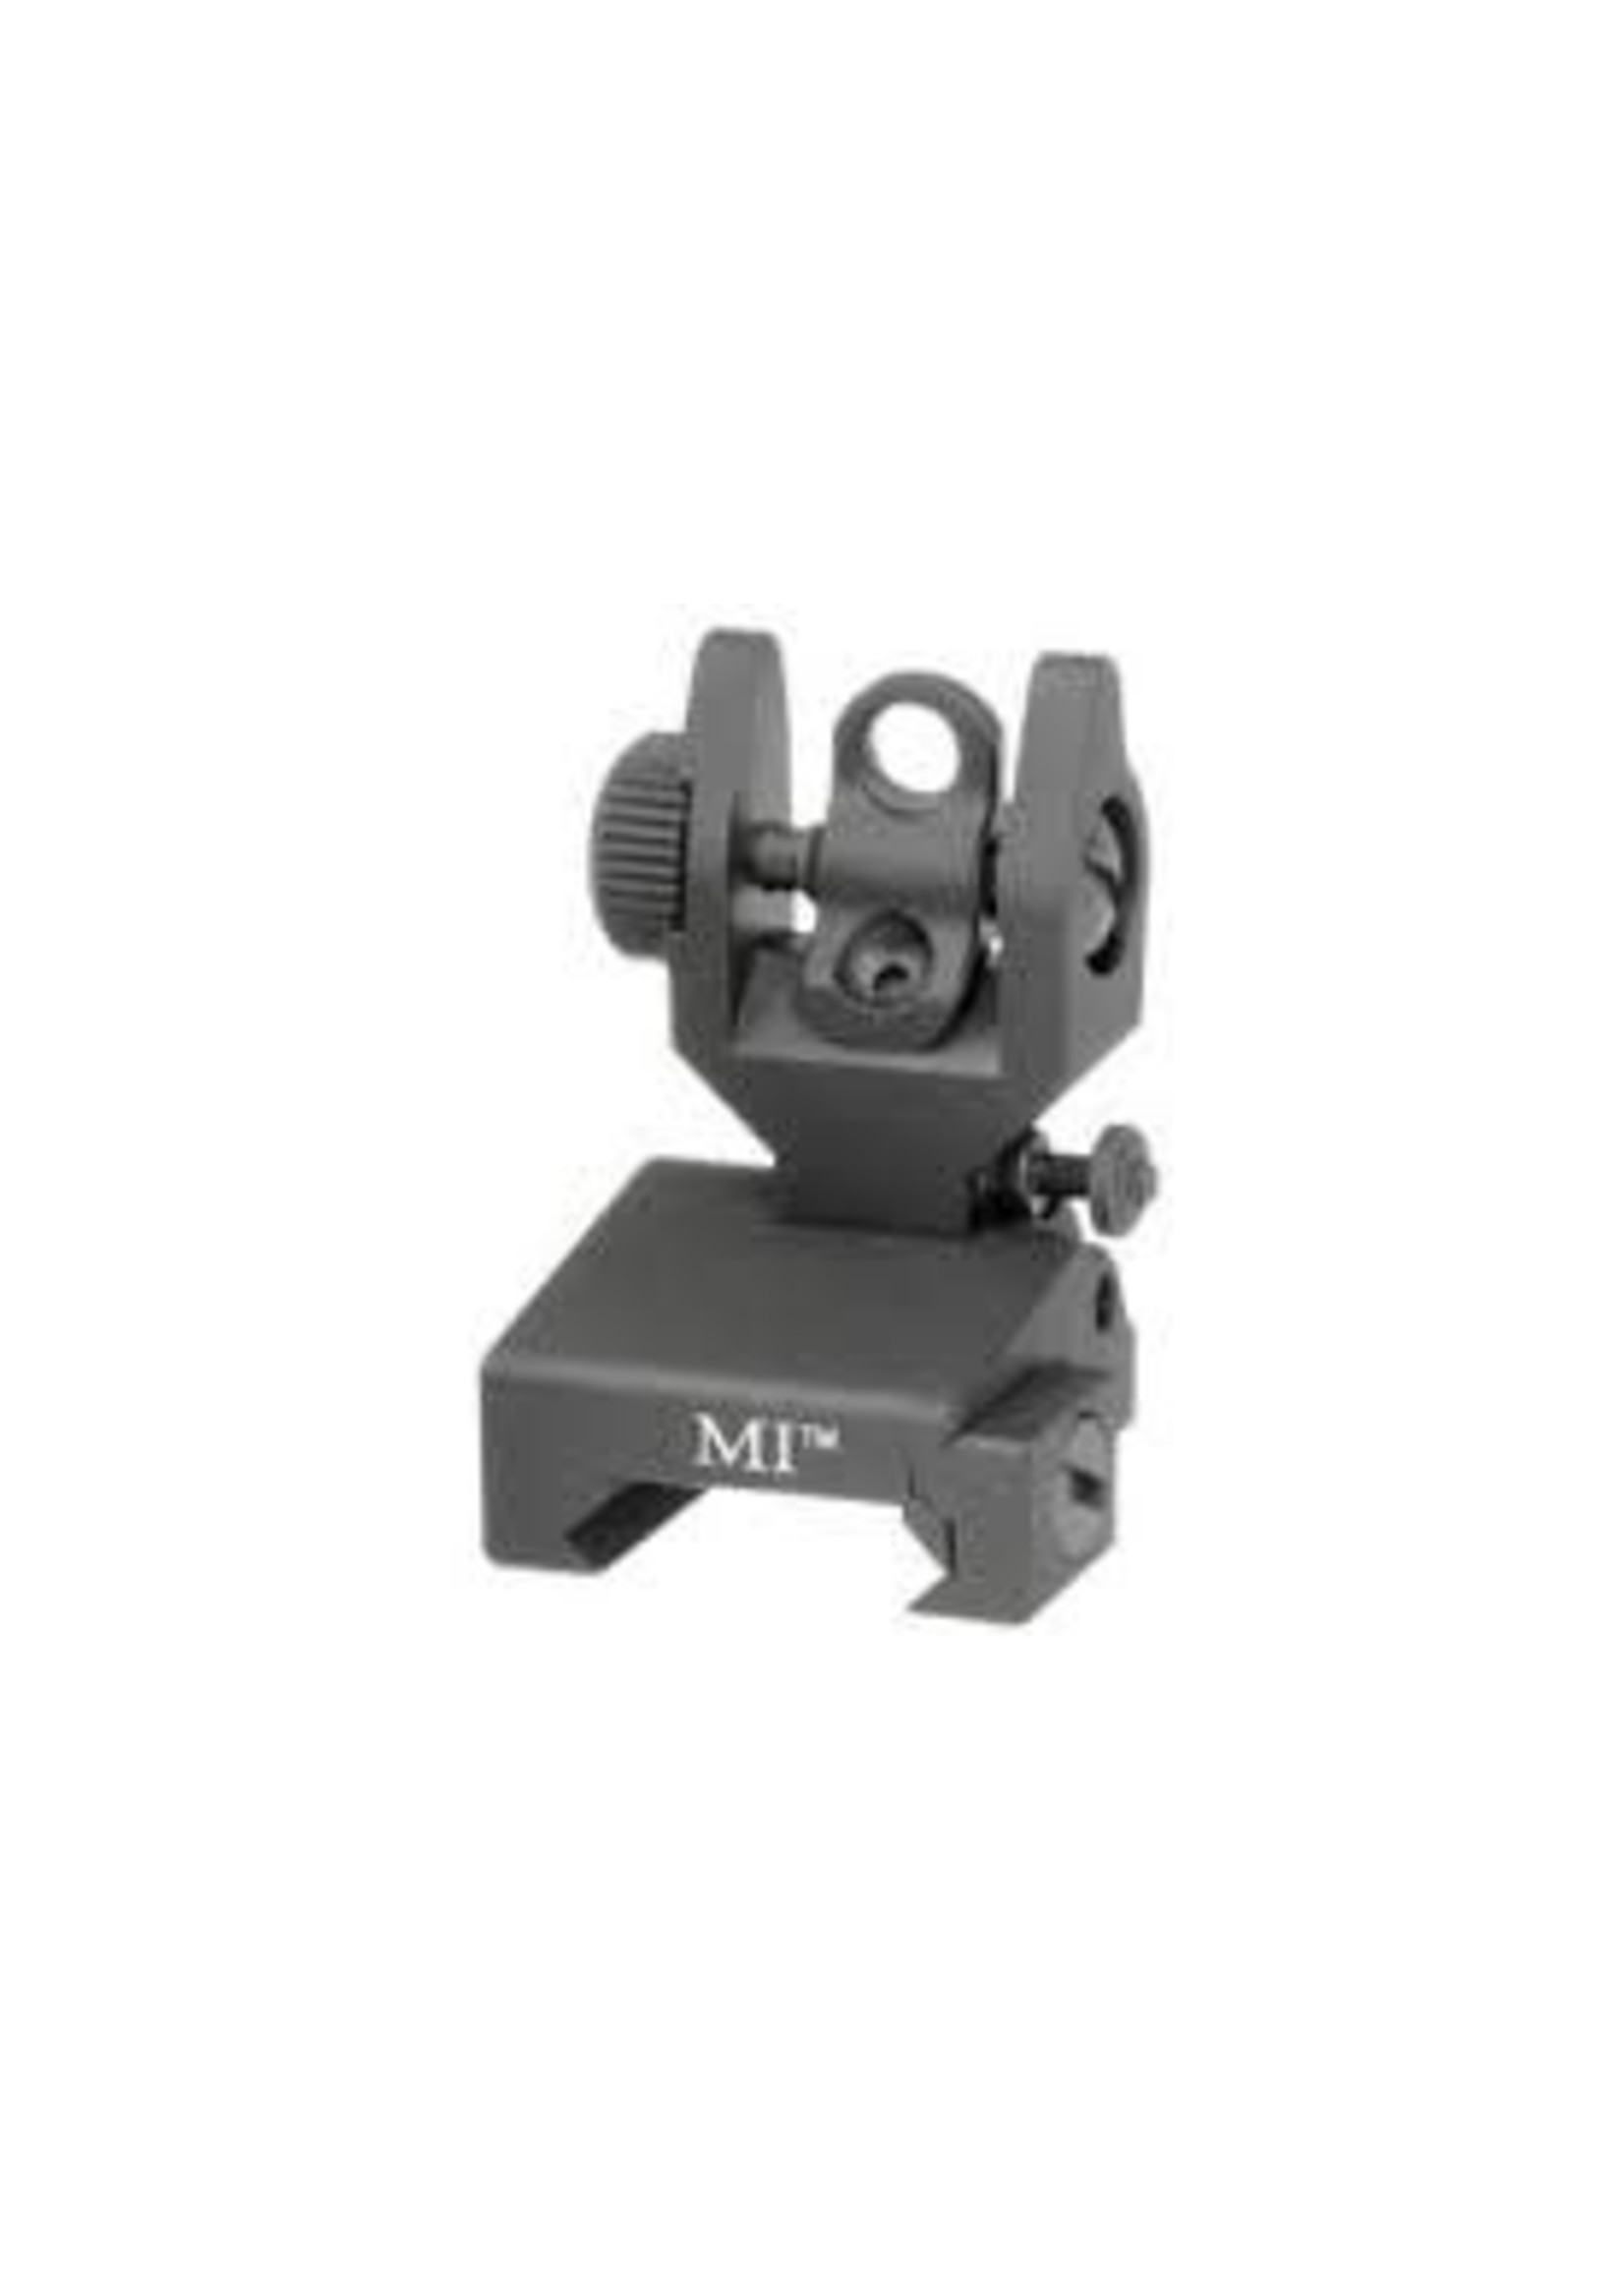 MIDWEST MIDWEST LOW PROFILE FLIP REAR SIGHT